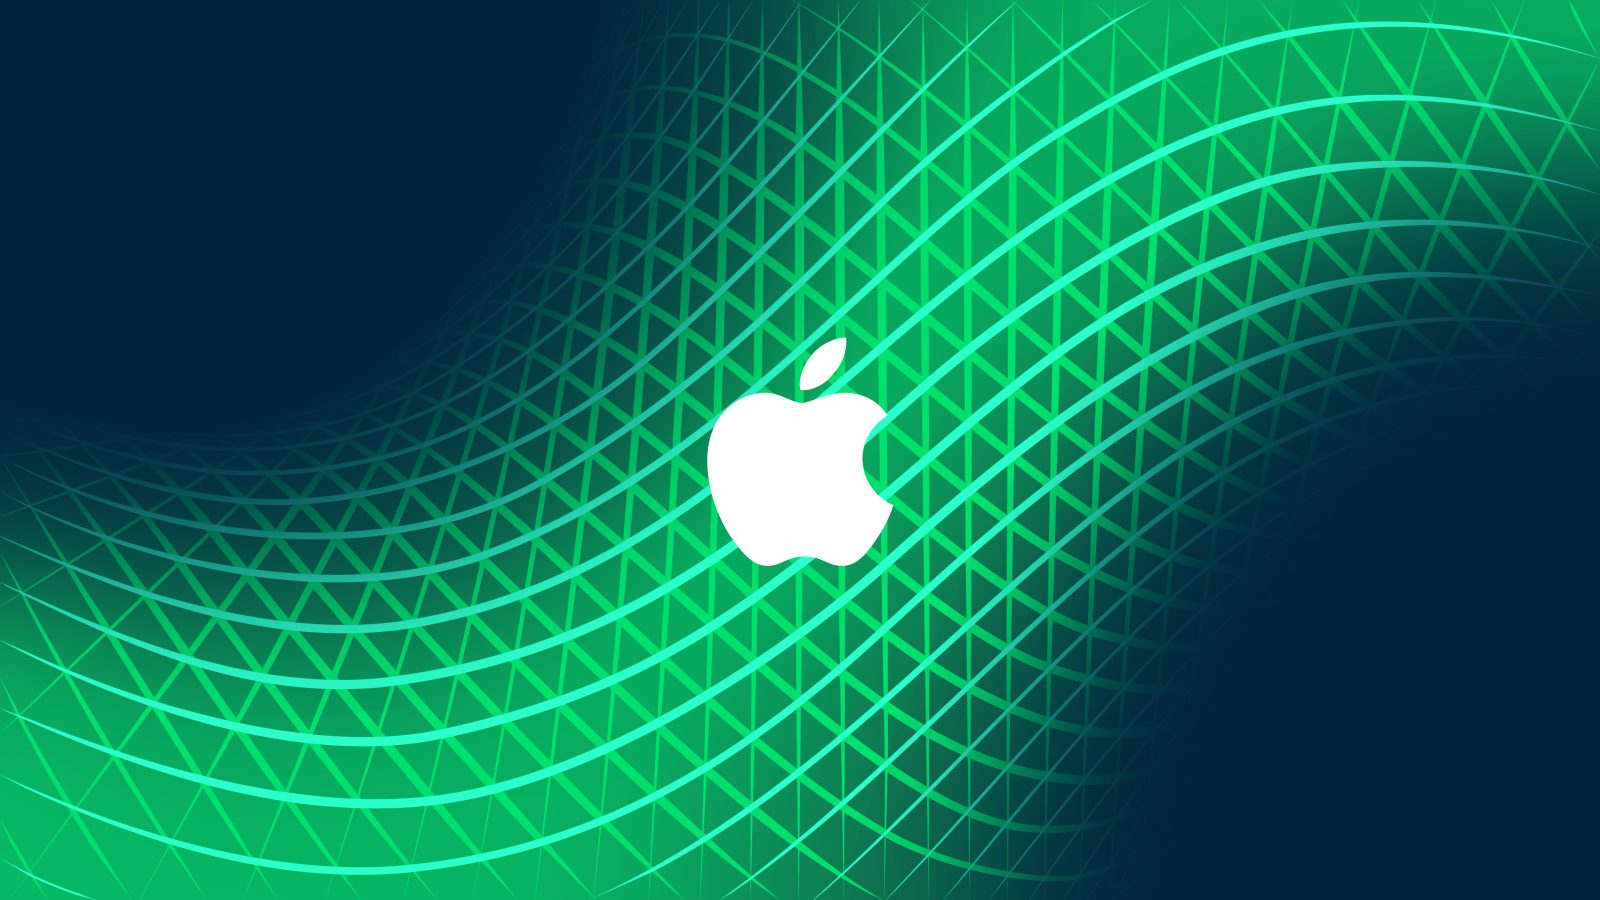 Second Apple Store in Singapore will open at Jewel Changi Airport on July 13th